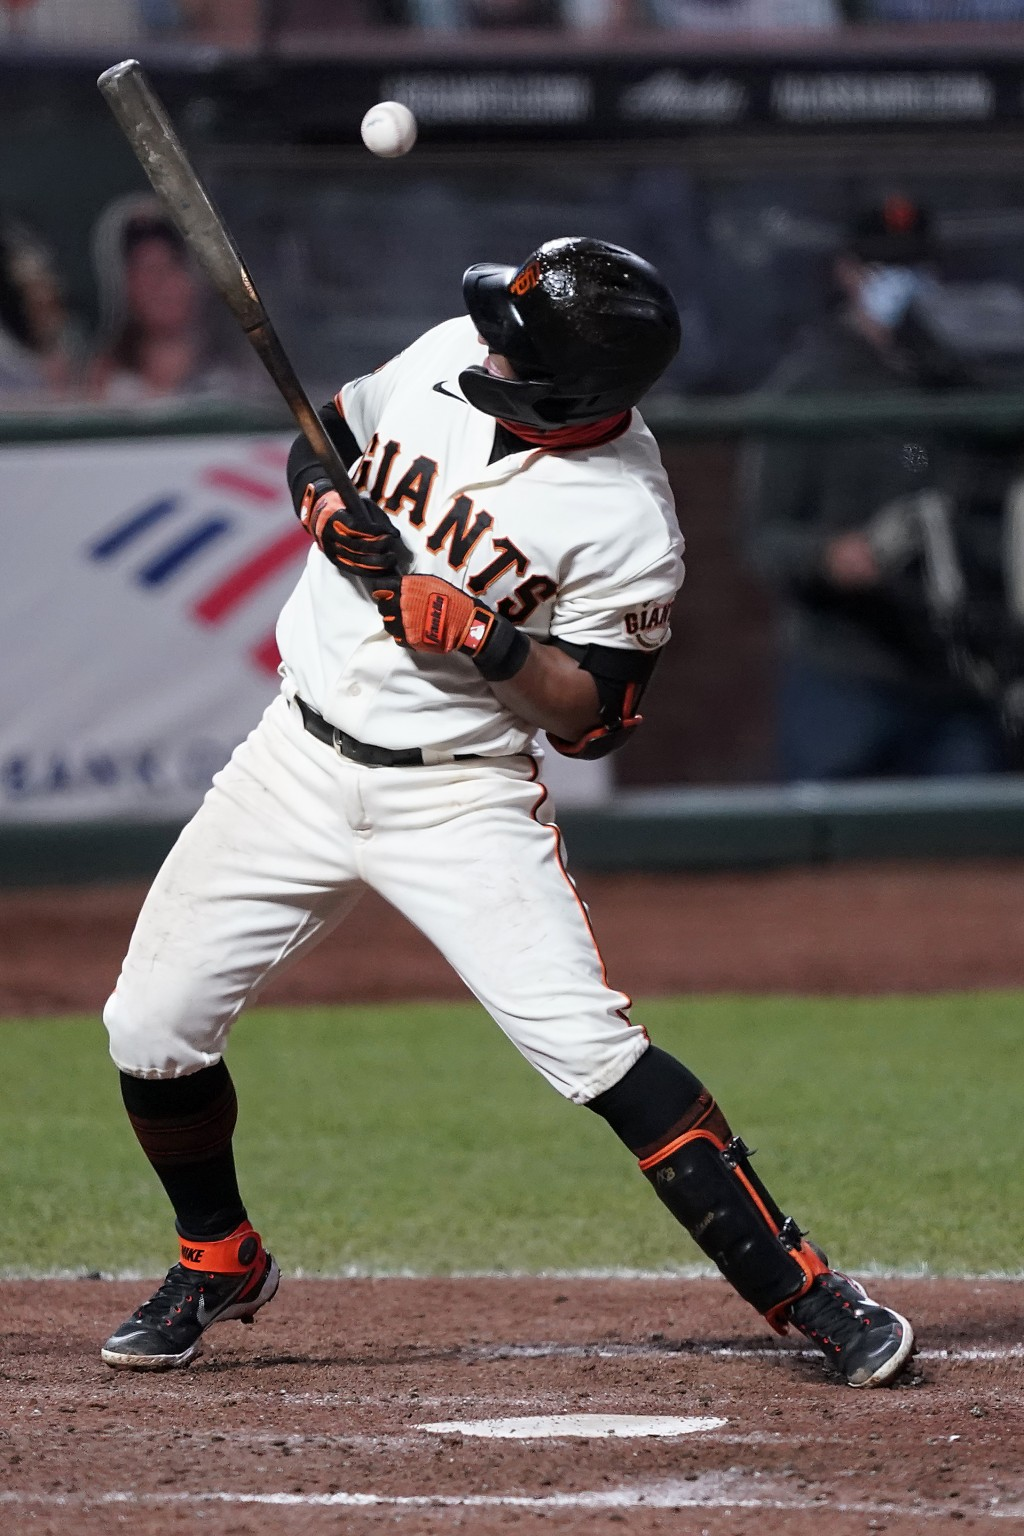 San Francisco Giants' Donovan Solano is hit by a pitch against the Colorado Rockies during the seventh inning of a baseball game on Monday, Sept. 21, ...